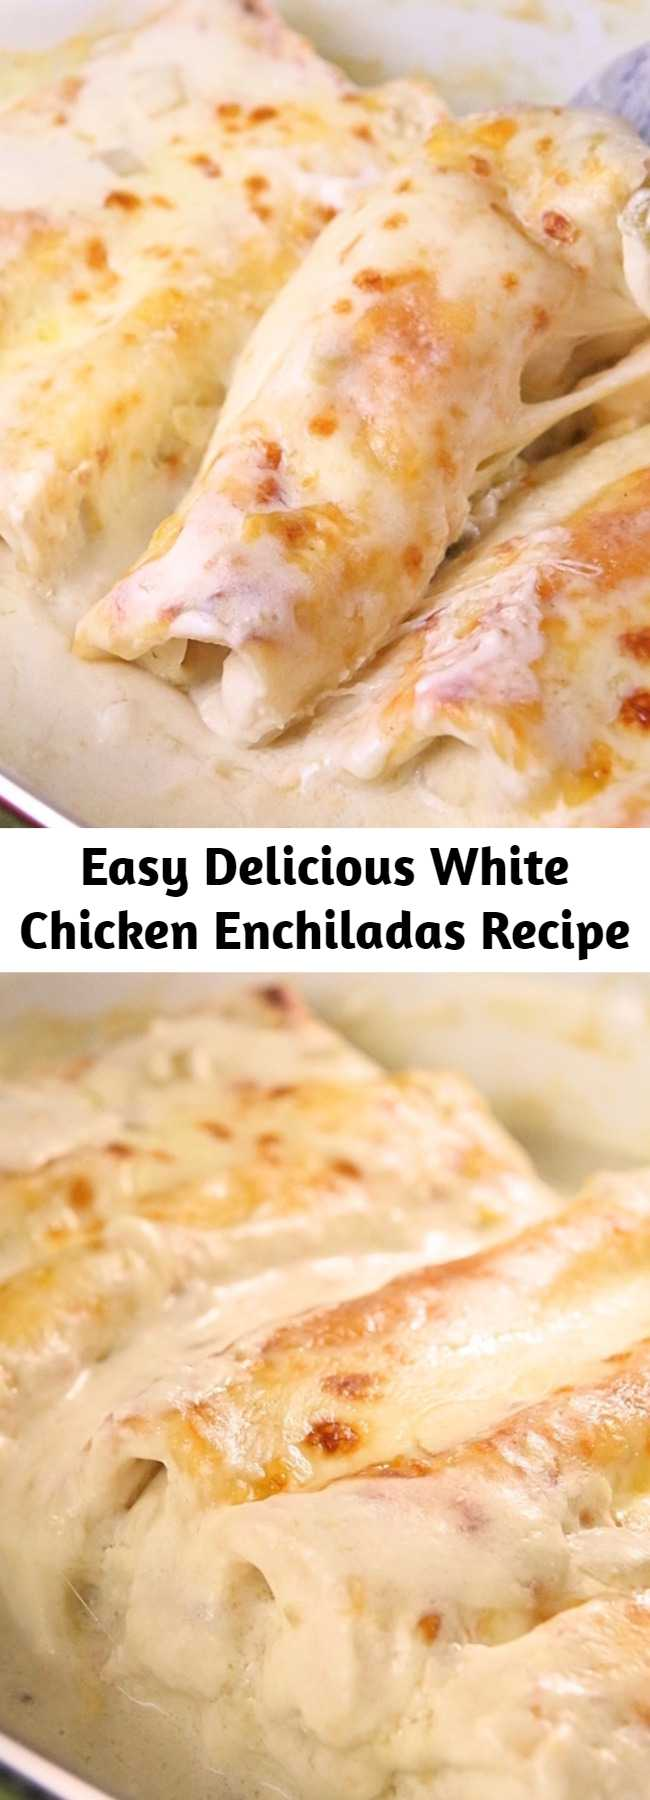 Easy Delicious White Chicken Enchiladas Recipe - This White Chicken Enchiladas Recipe is EASY and delicious! Sour cream and green chilies make the creamiest sauce. I guess I was drawn by the simplicity of the recipe and of course how creamy and yummy it looked.